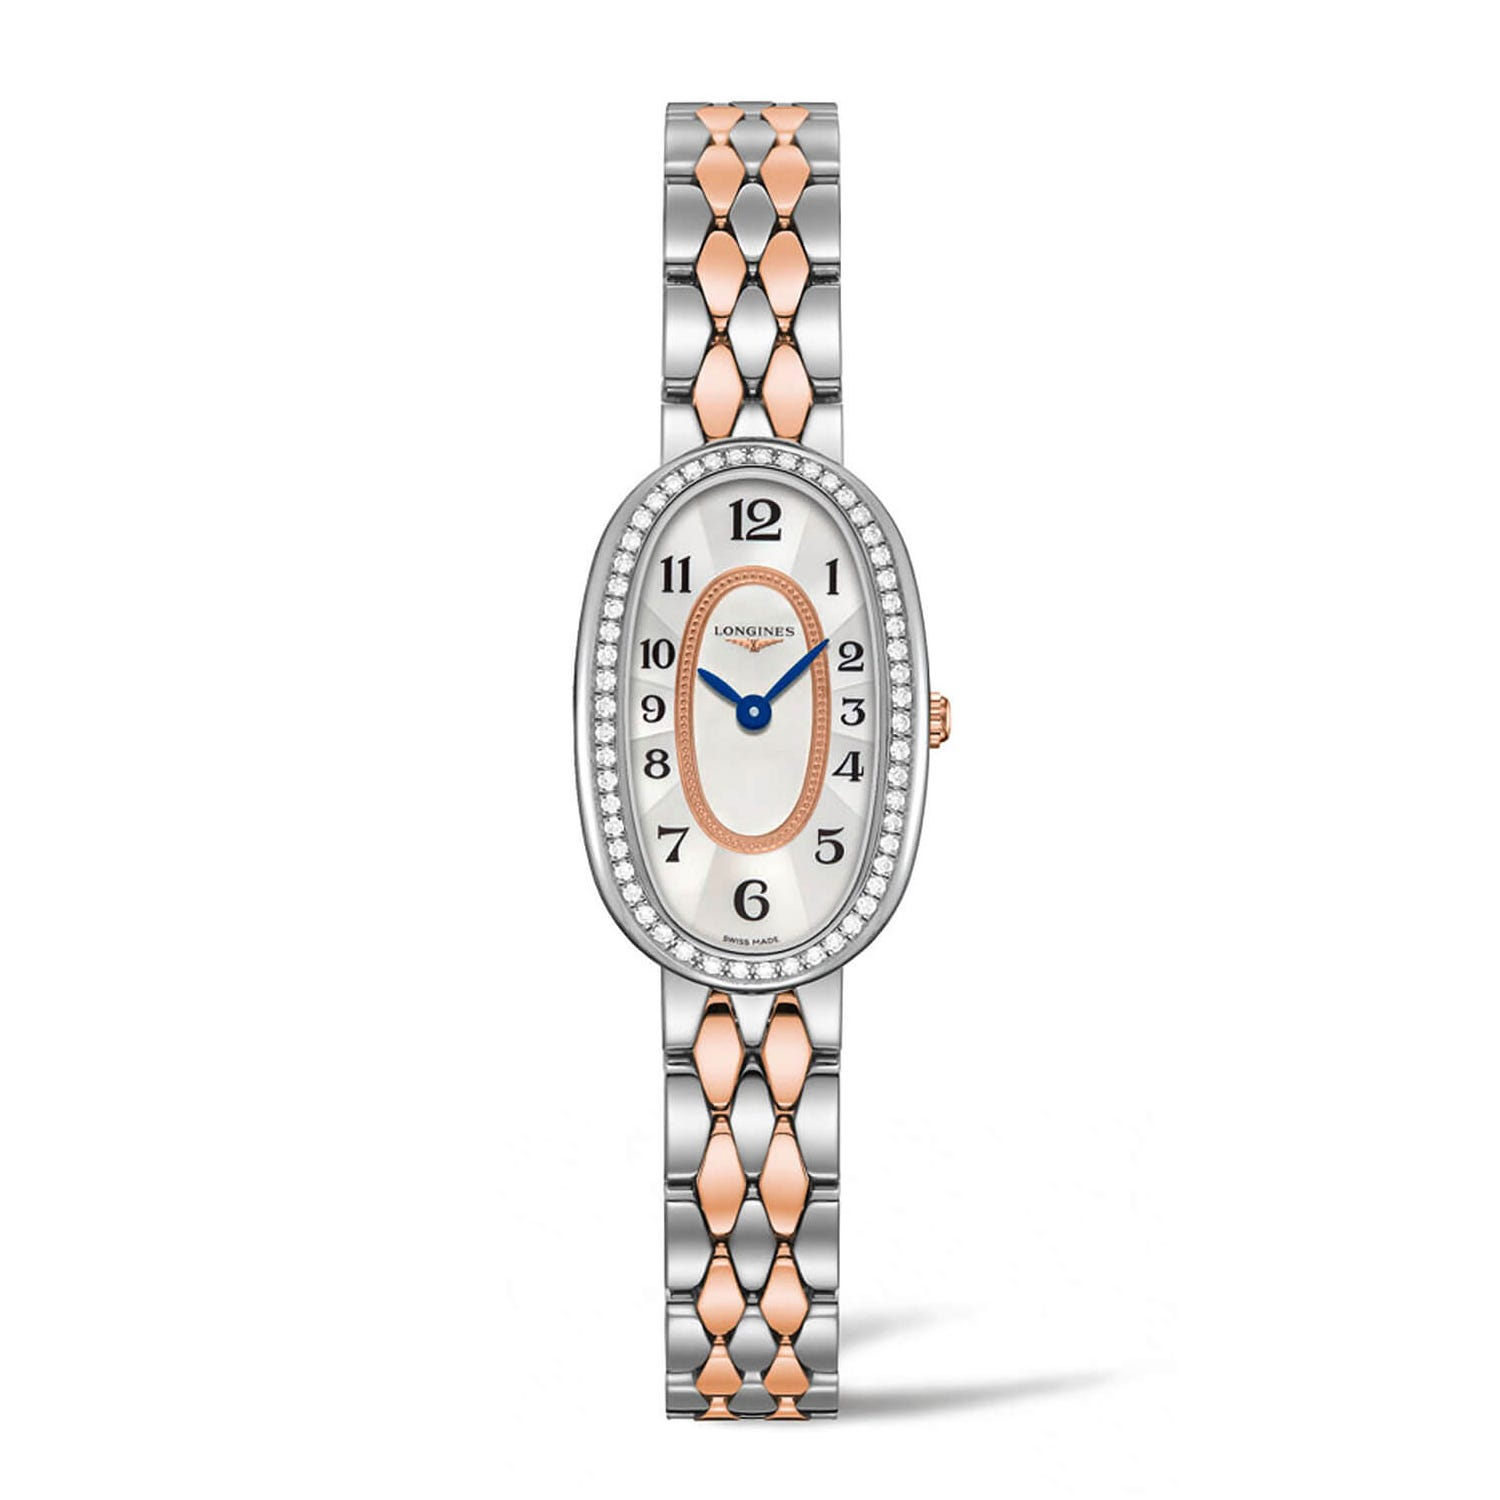 Longines Symphonette 18ct Rose Gold and Stainless Steel Diamond Ladies Watch